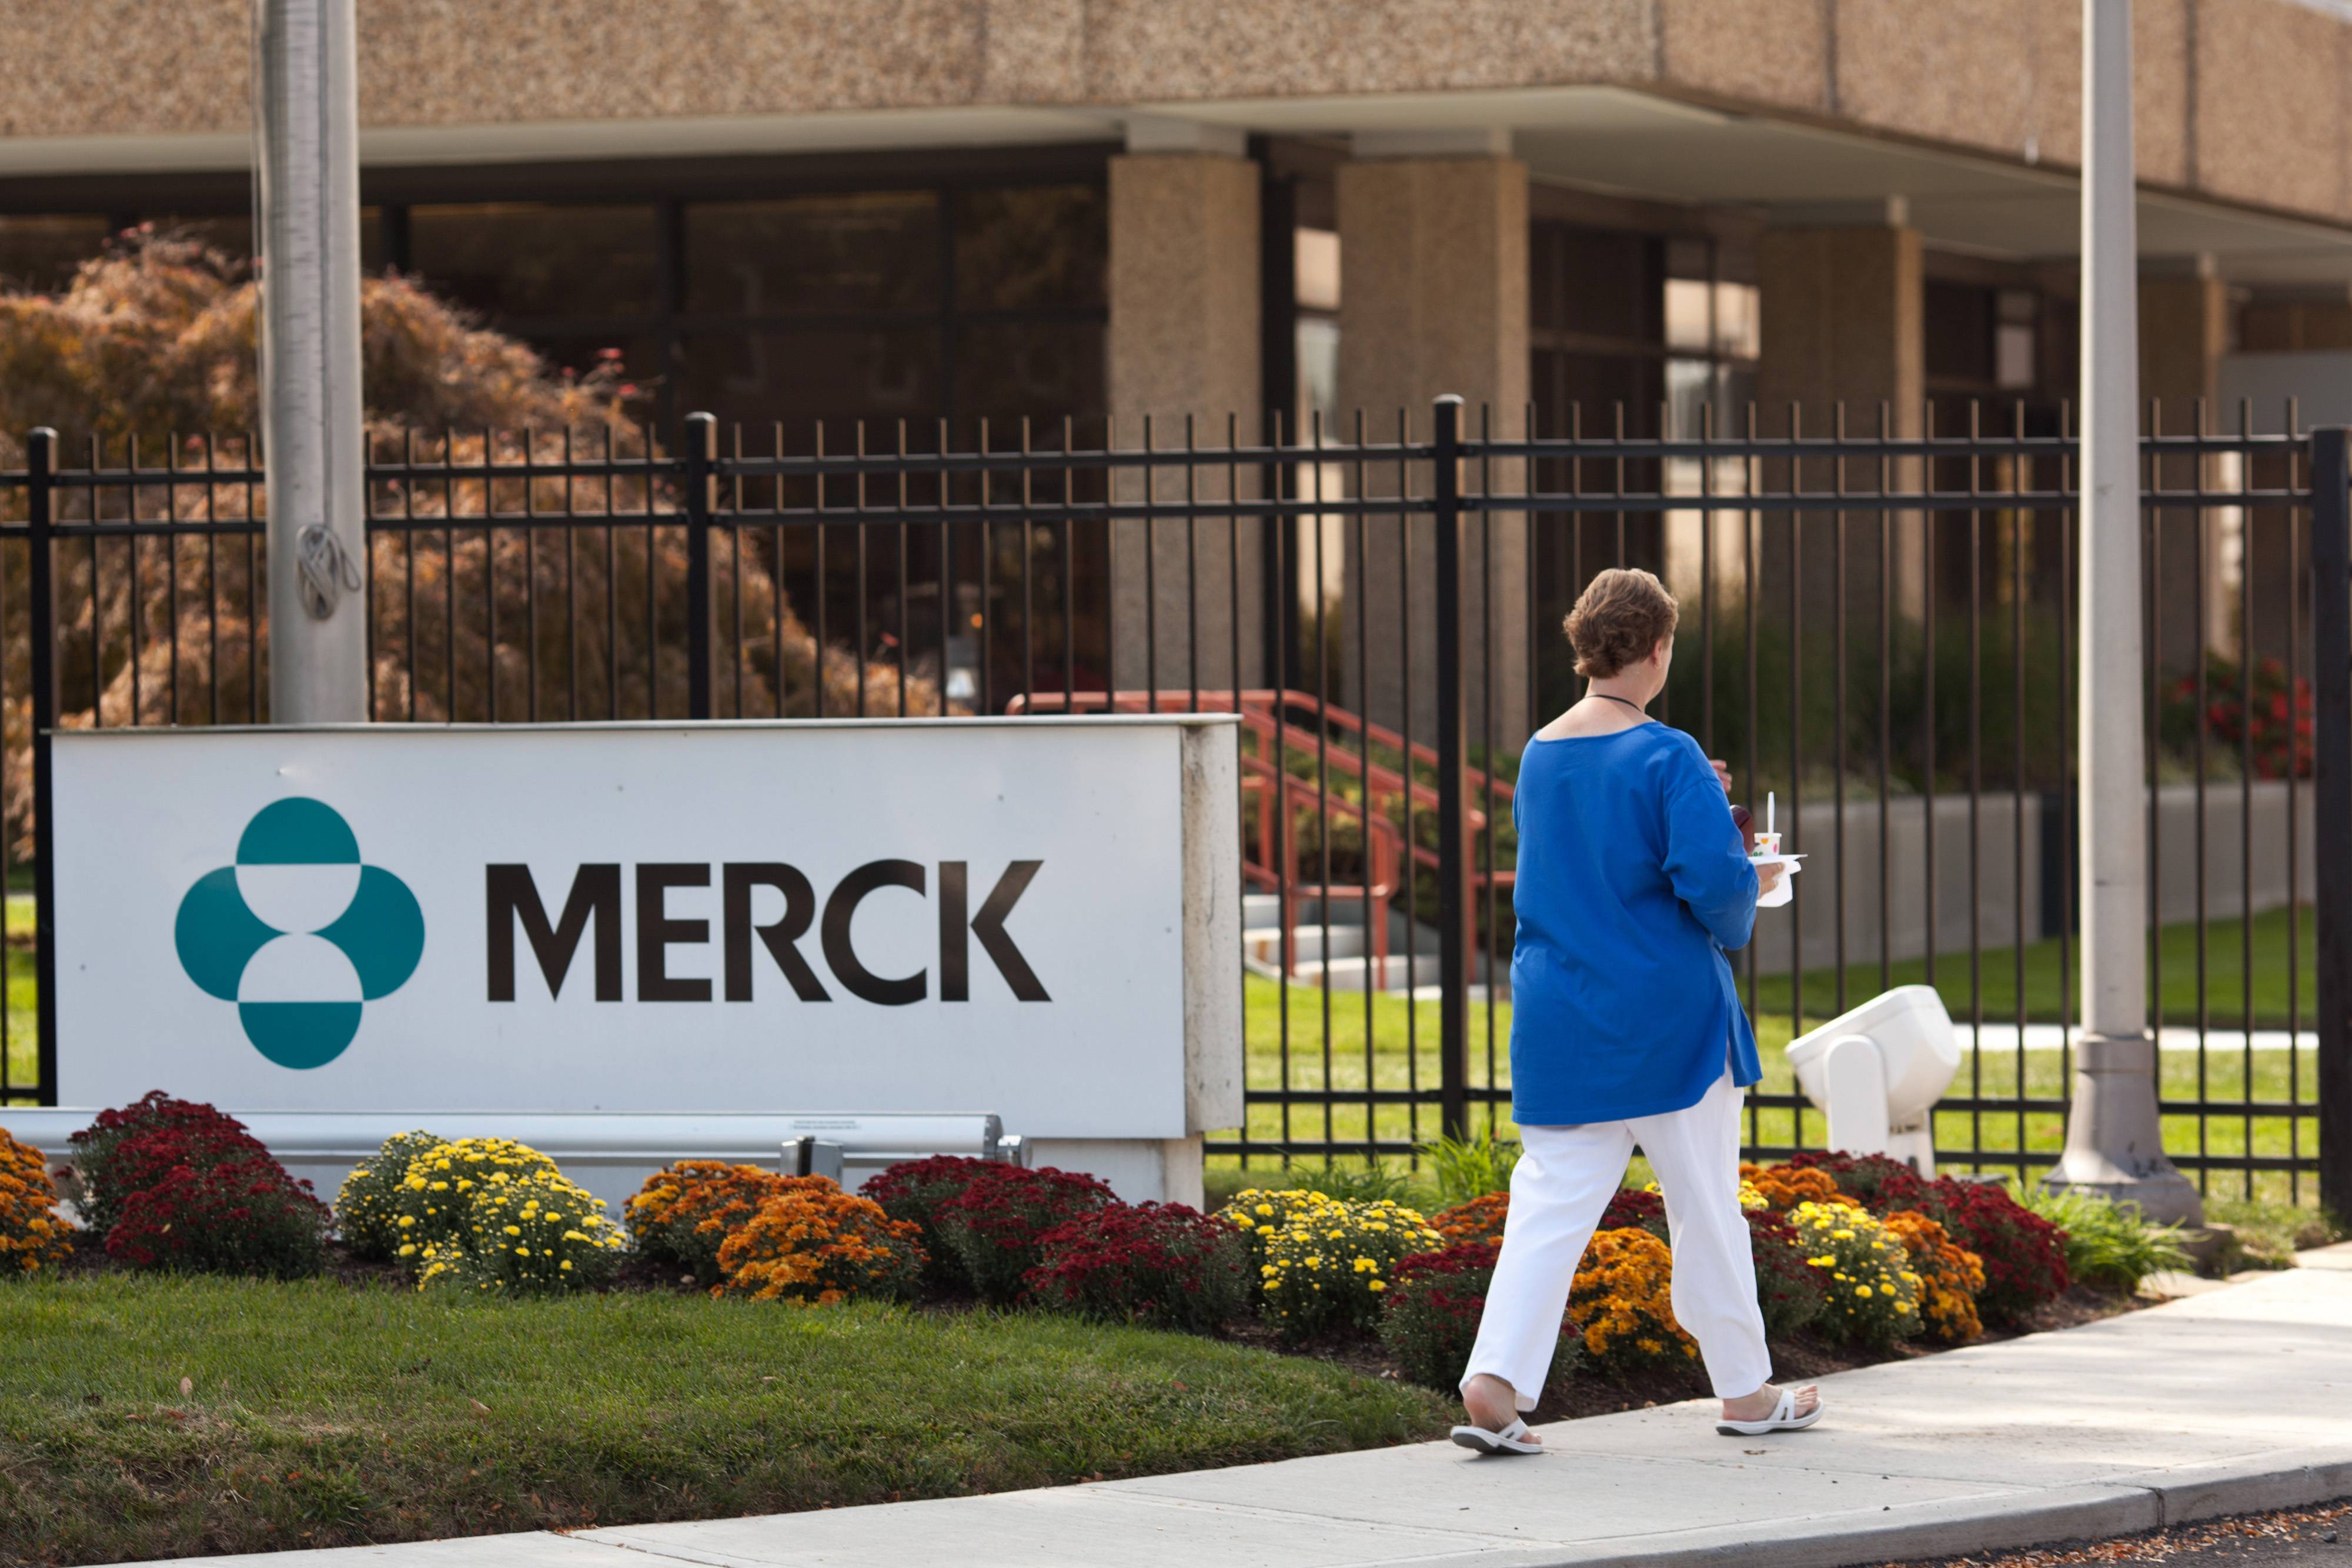 A pedestrian walks outside a Merck & Co. facility in Summit, New Jersey. The second-biggest U.S. drugmaker by sales will lay off 8,500 workers and revamp its research and development after seeing new medicines delayed by U.S. regulators.